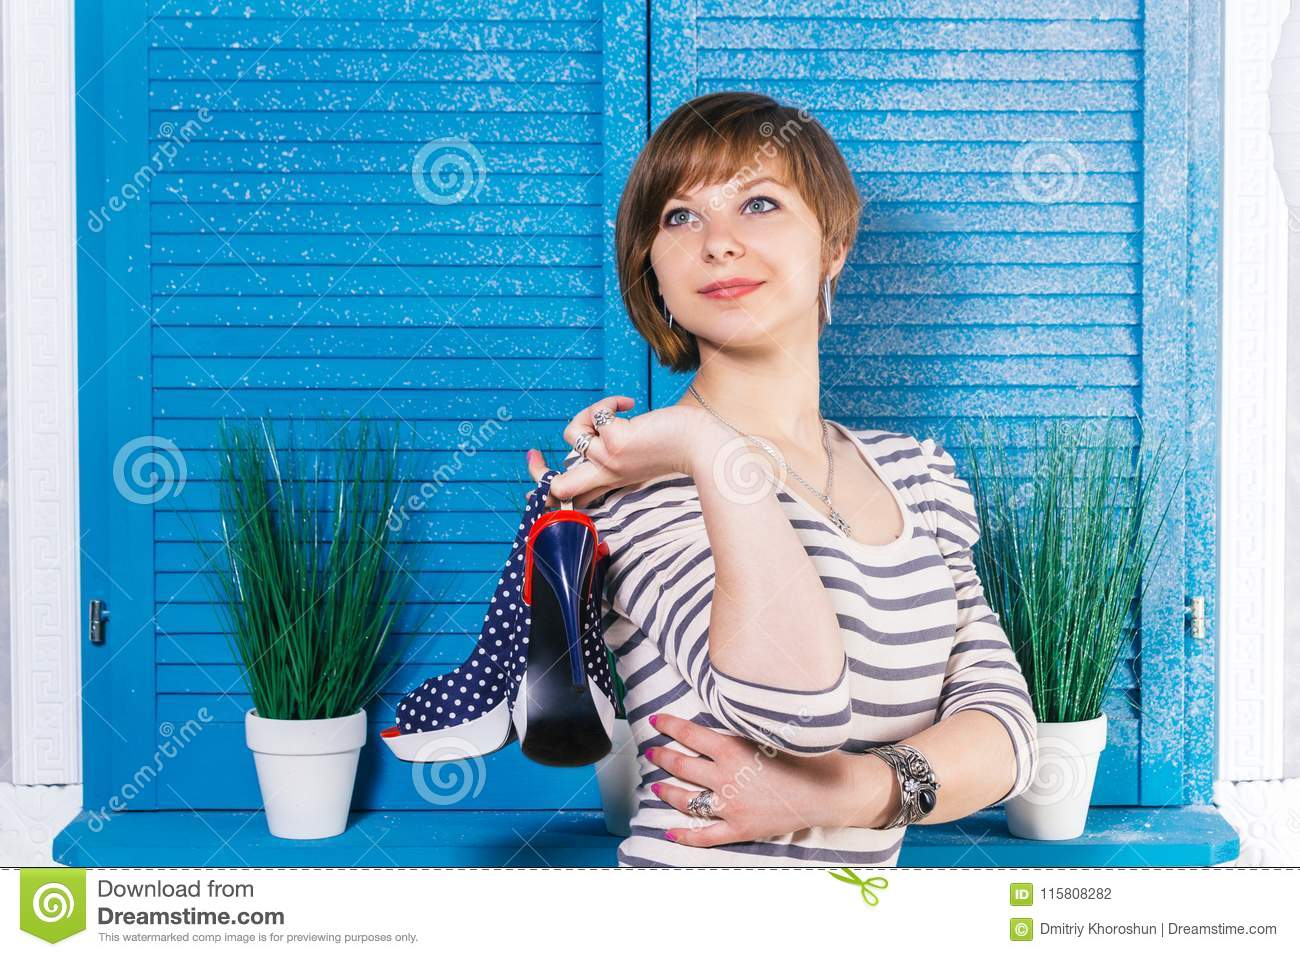 Cute short-haired european teen Girl holding her new high heeled dotted  shoes in front of blue jalousie window with green plants. Shopping concept  with copy ...